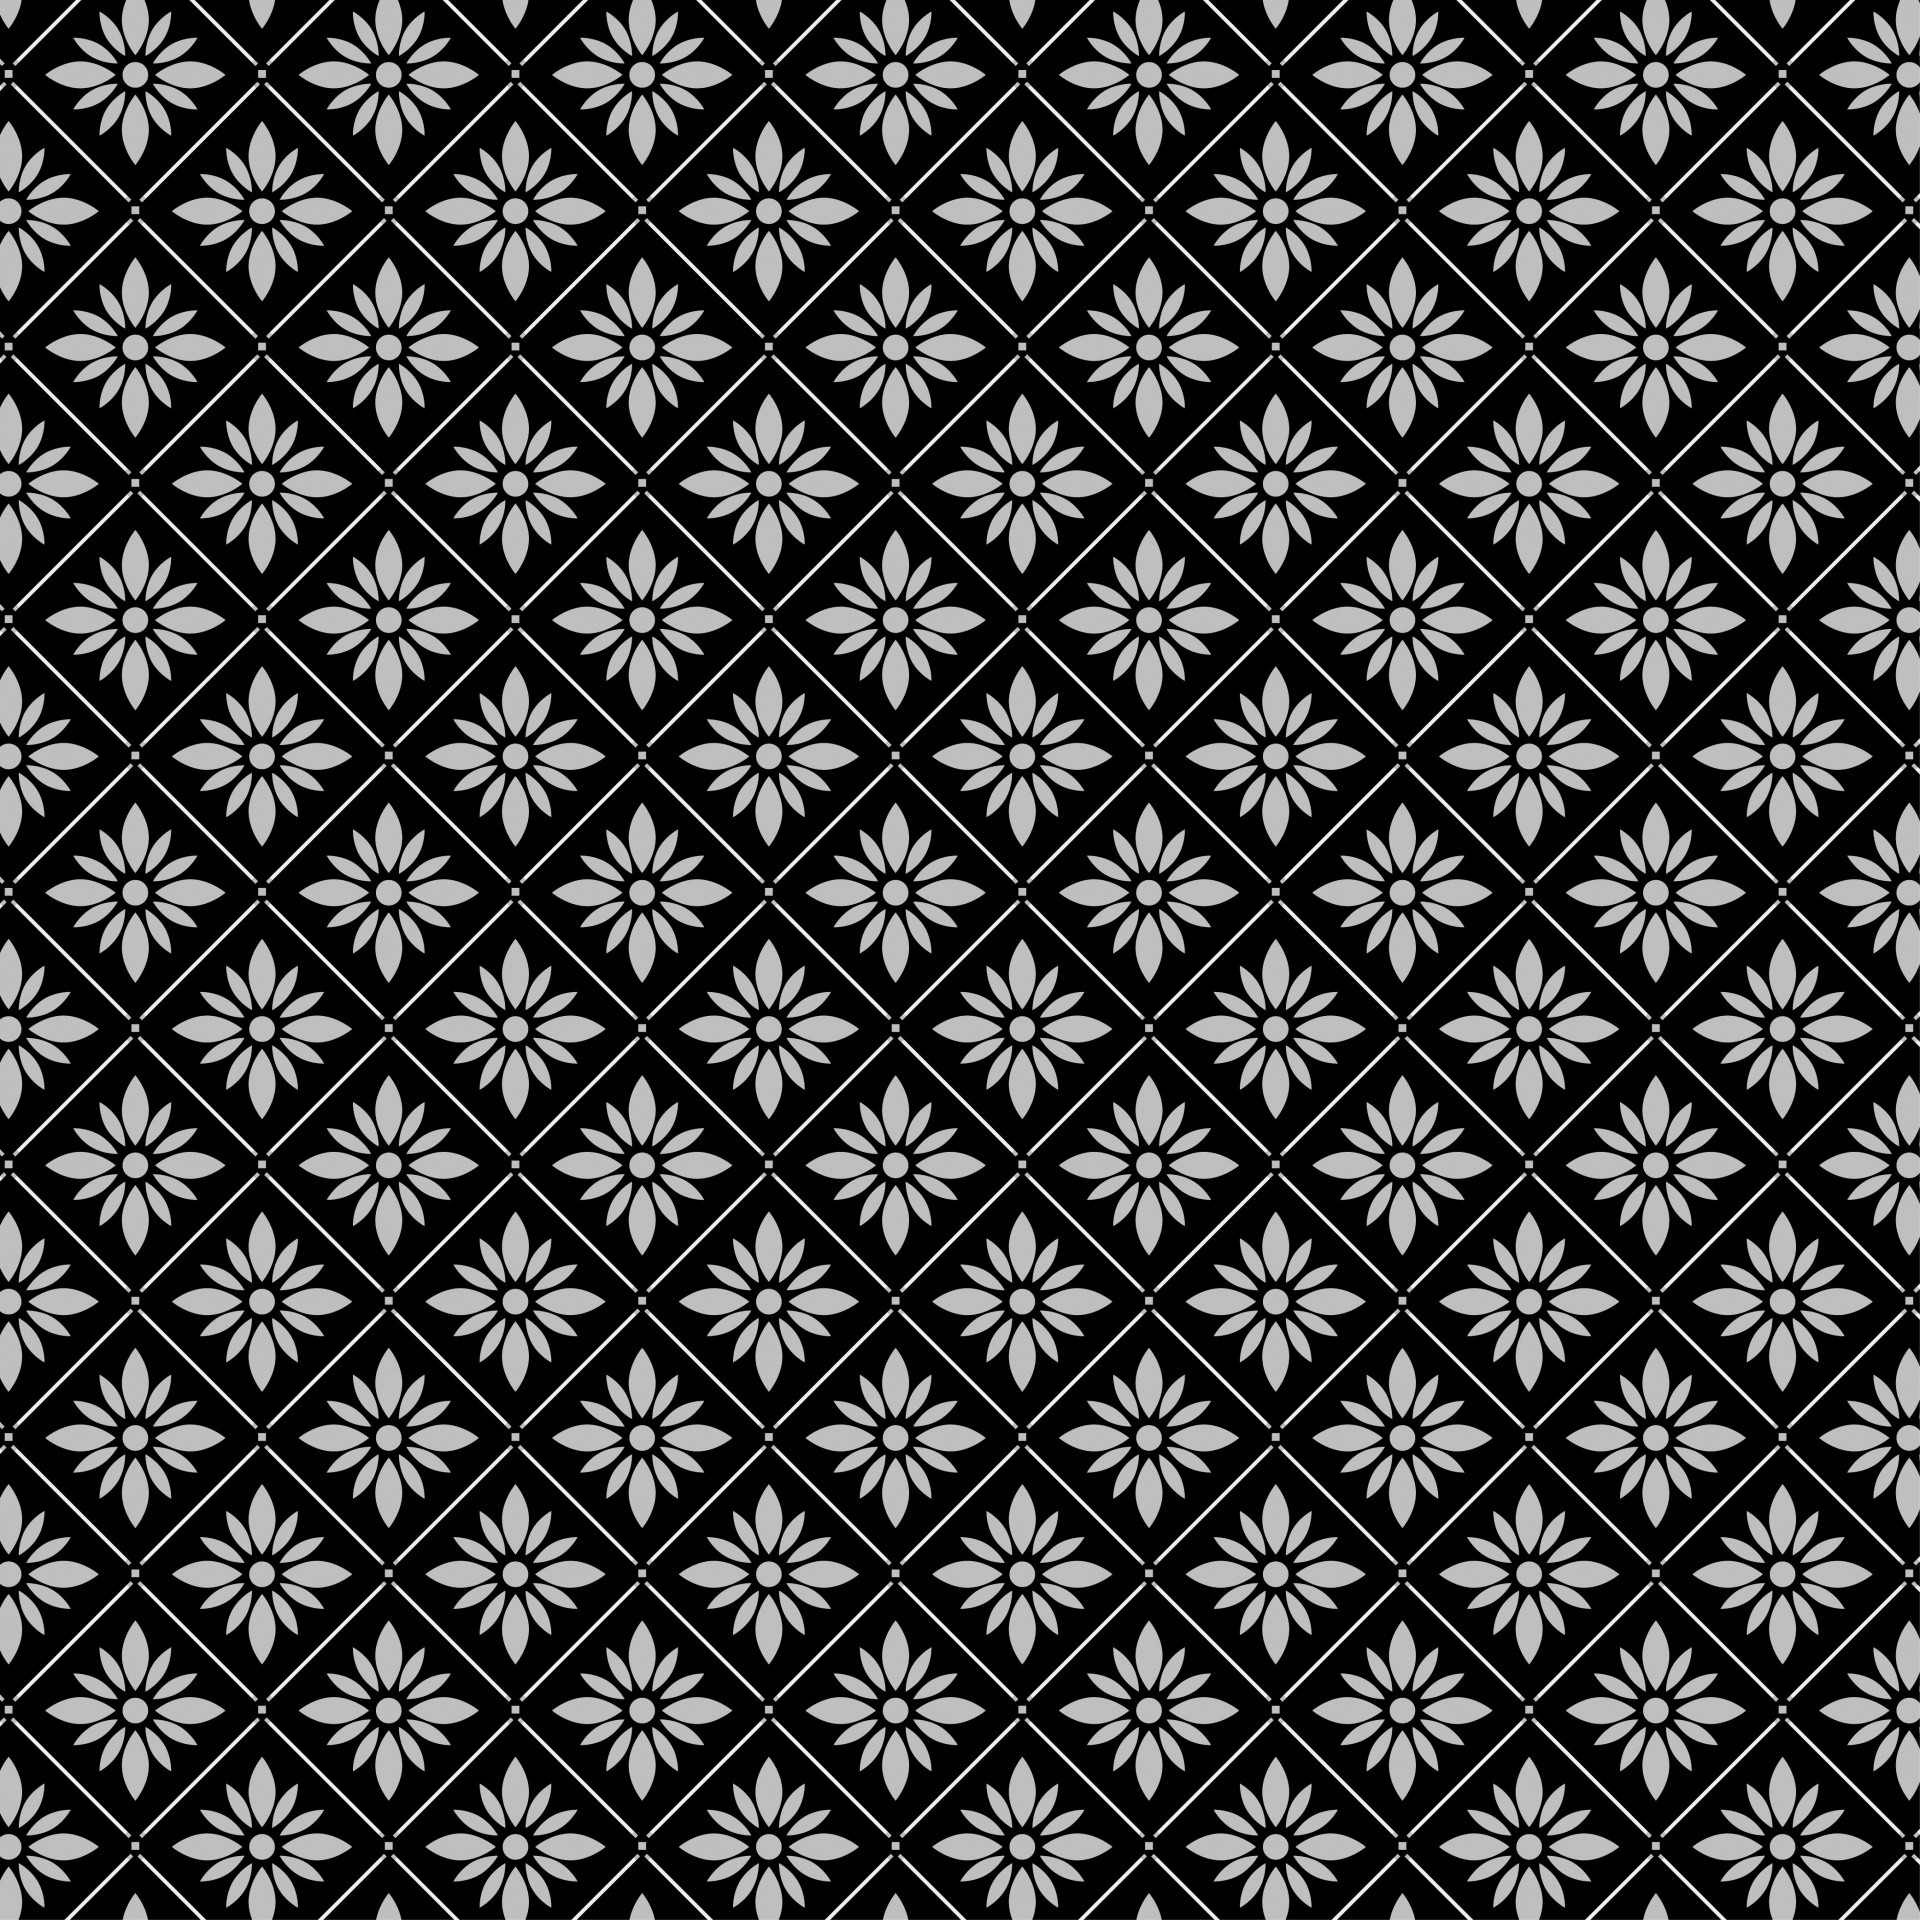 1920x1920 Floral Black Grey Wallpaper